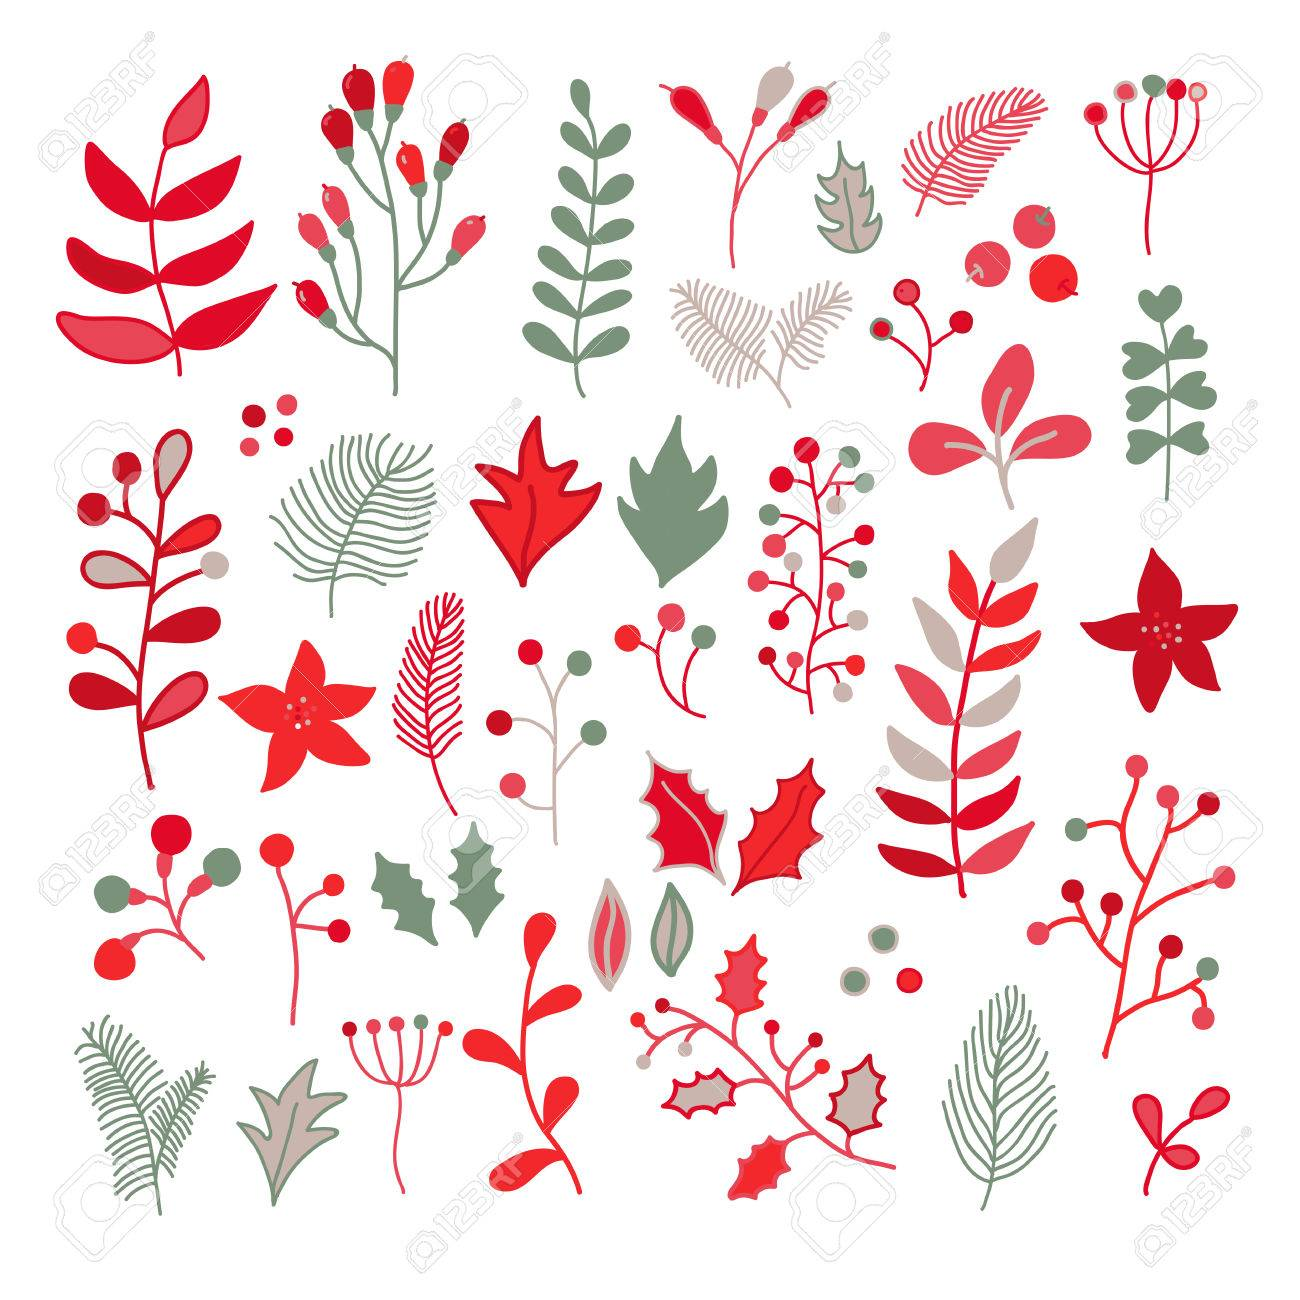 1300x1300 Christmas Floral Vector Drawing Set With Holly, Poinsettia